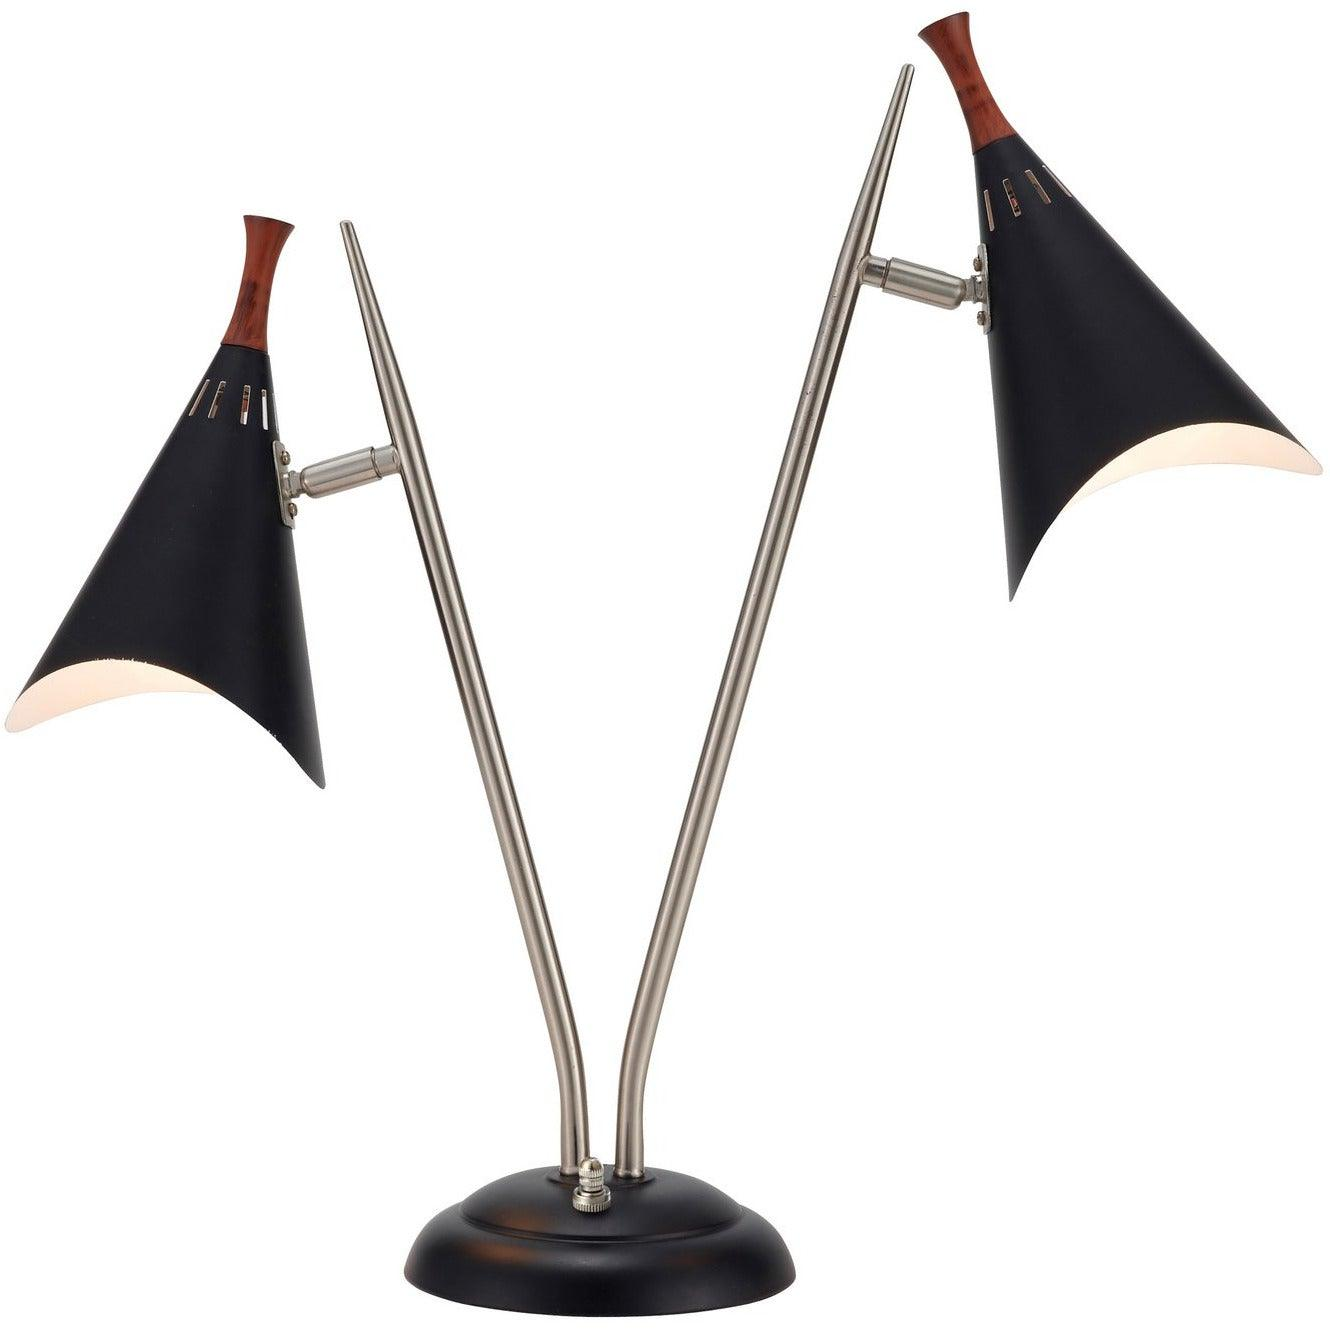 Adesso Home - 3235-01 - Two Light Table Lamp - Draper - Brushed Steel/Black painted w. wood accent